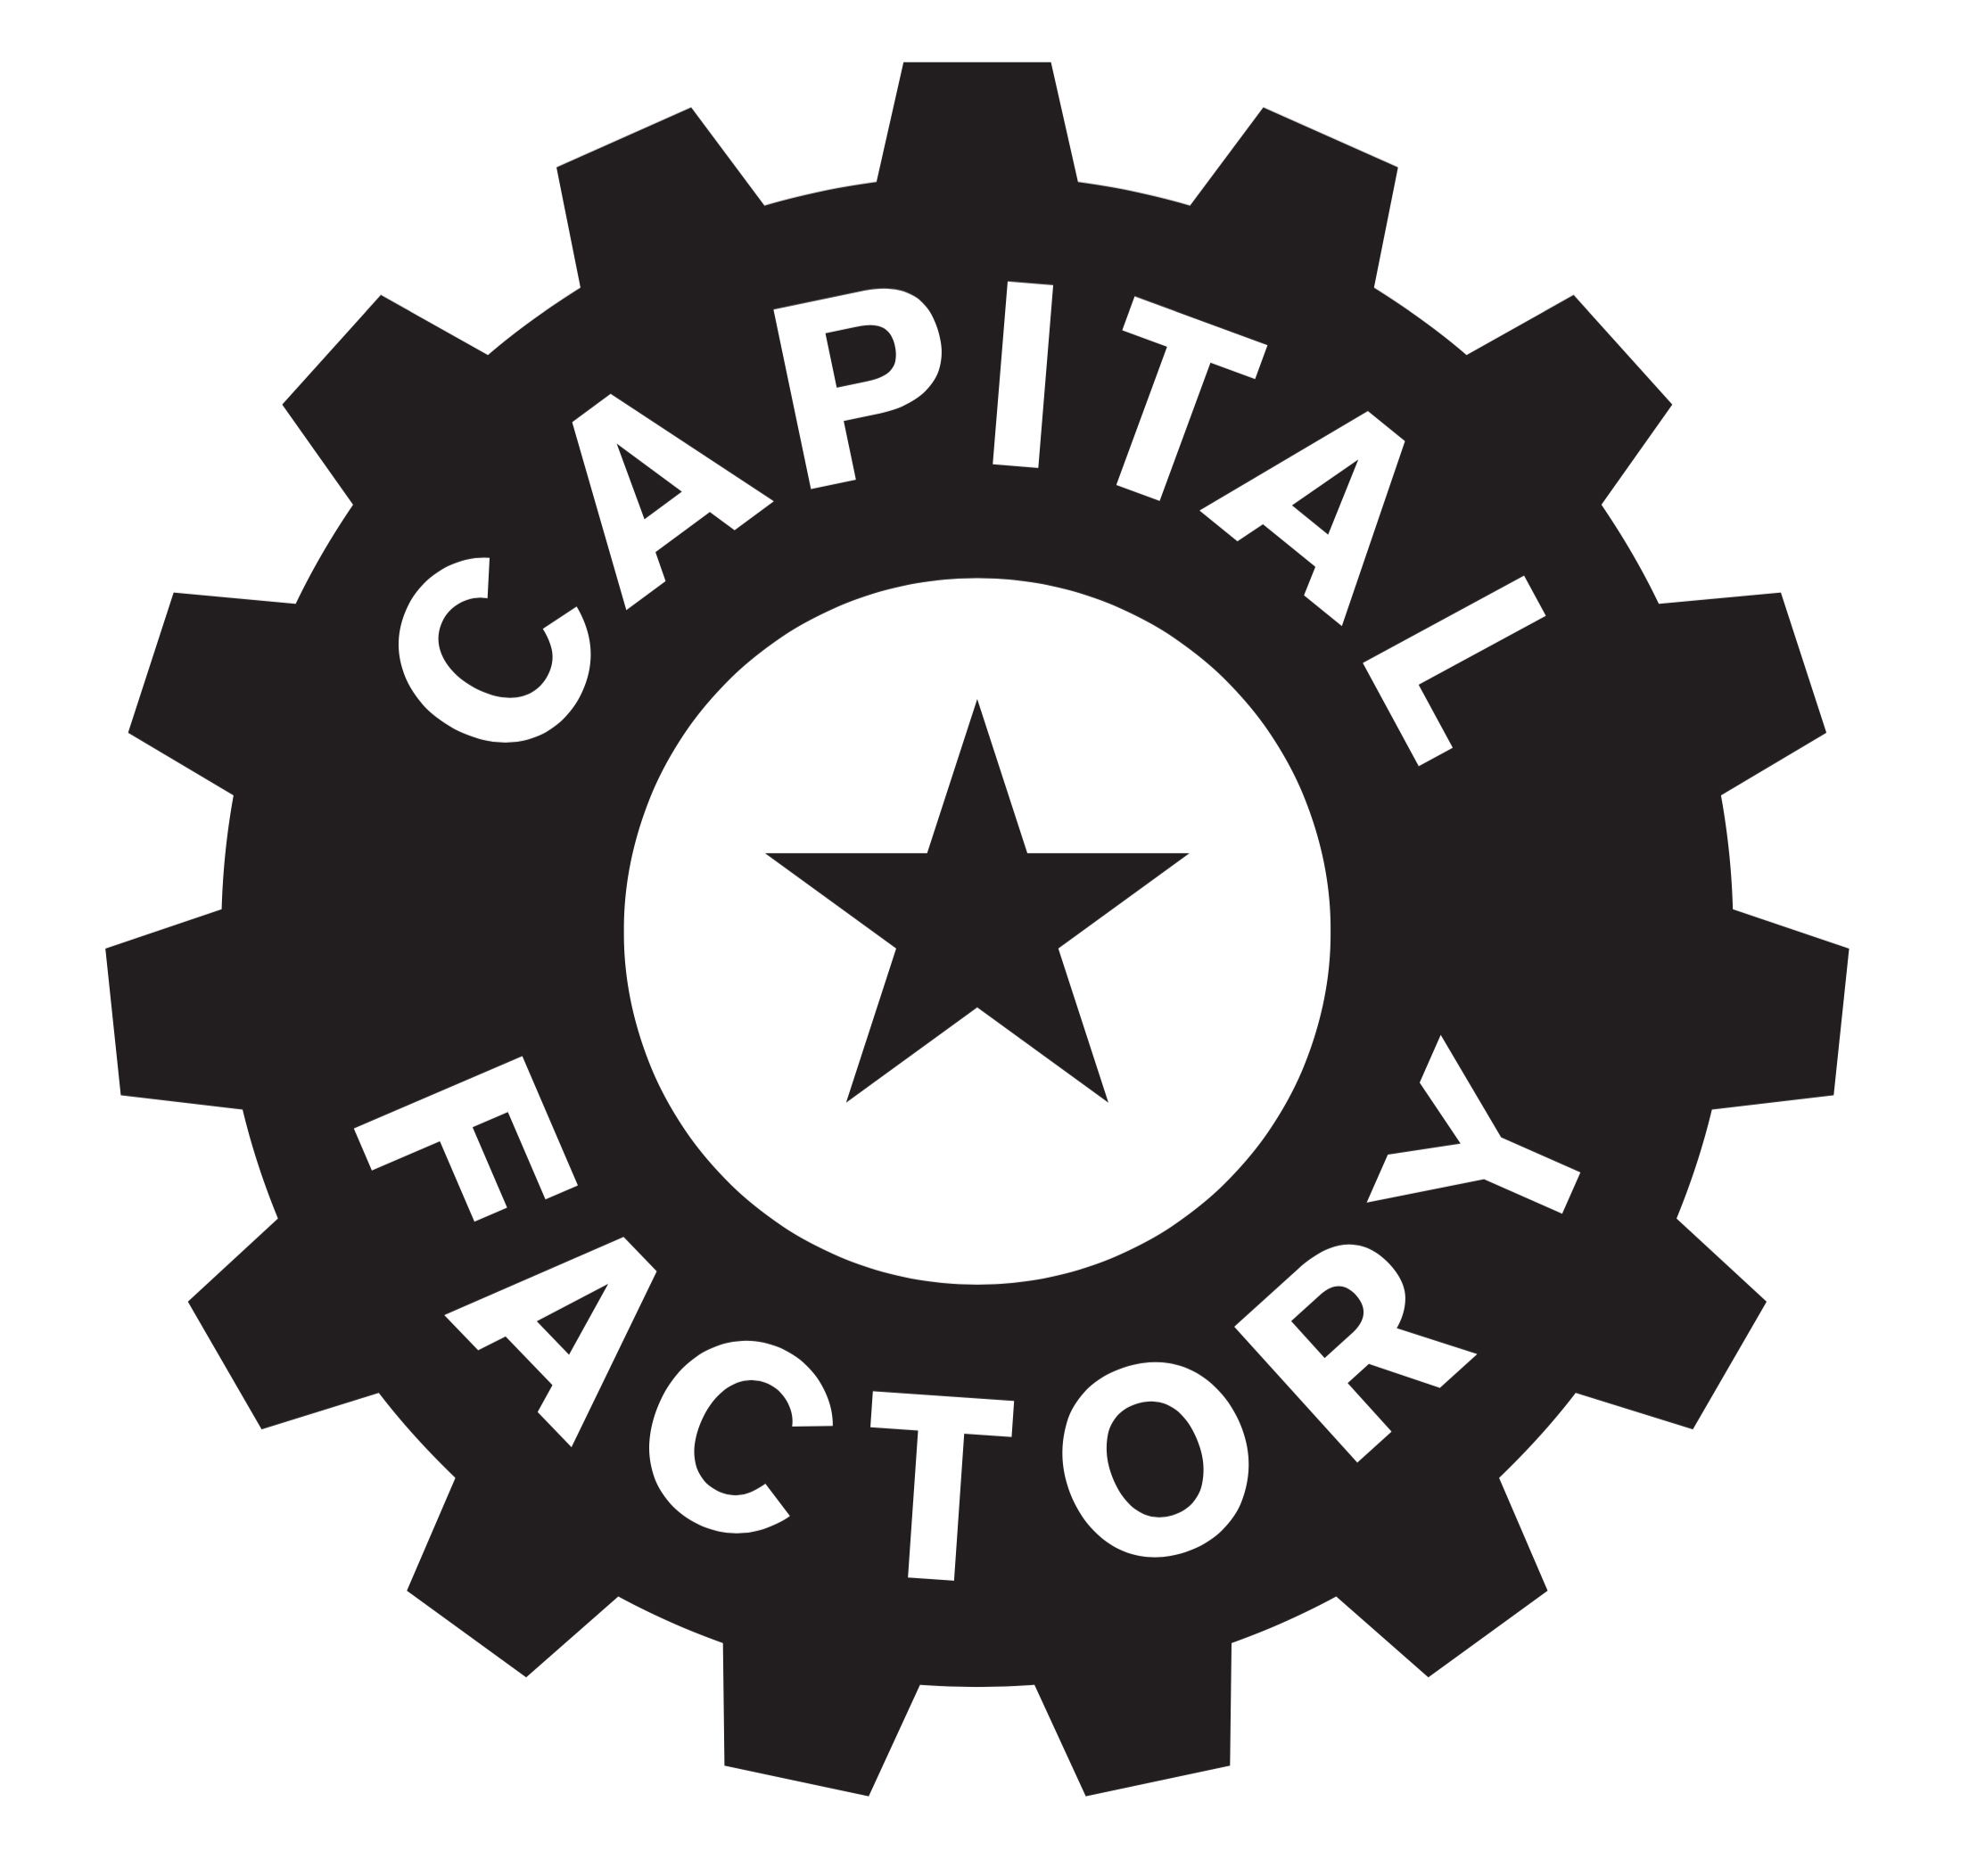 austin-capital-factory-startups-coworking